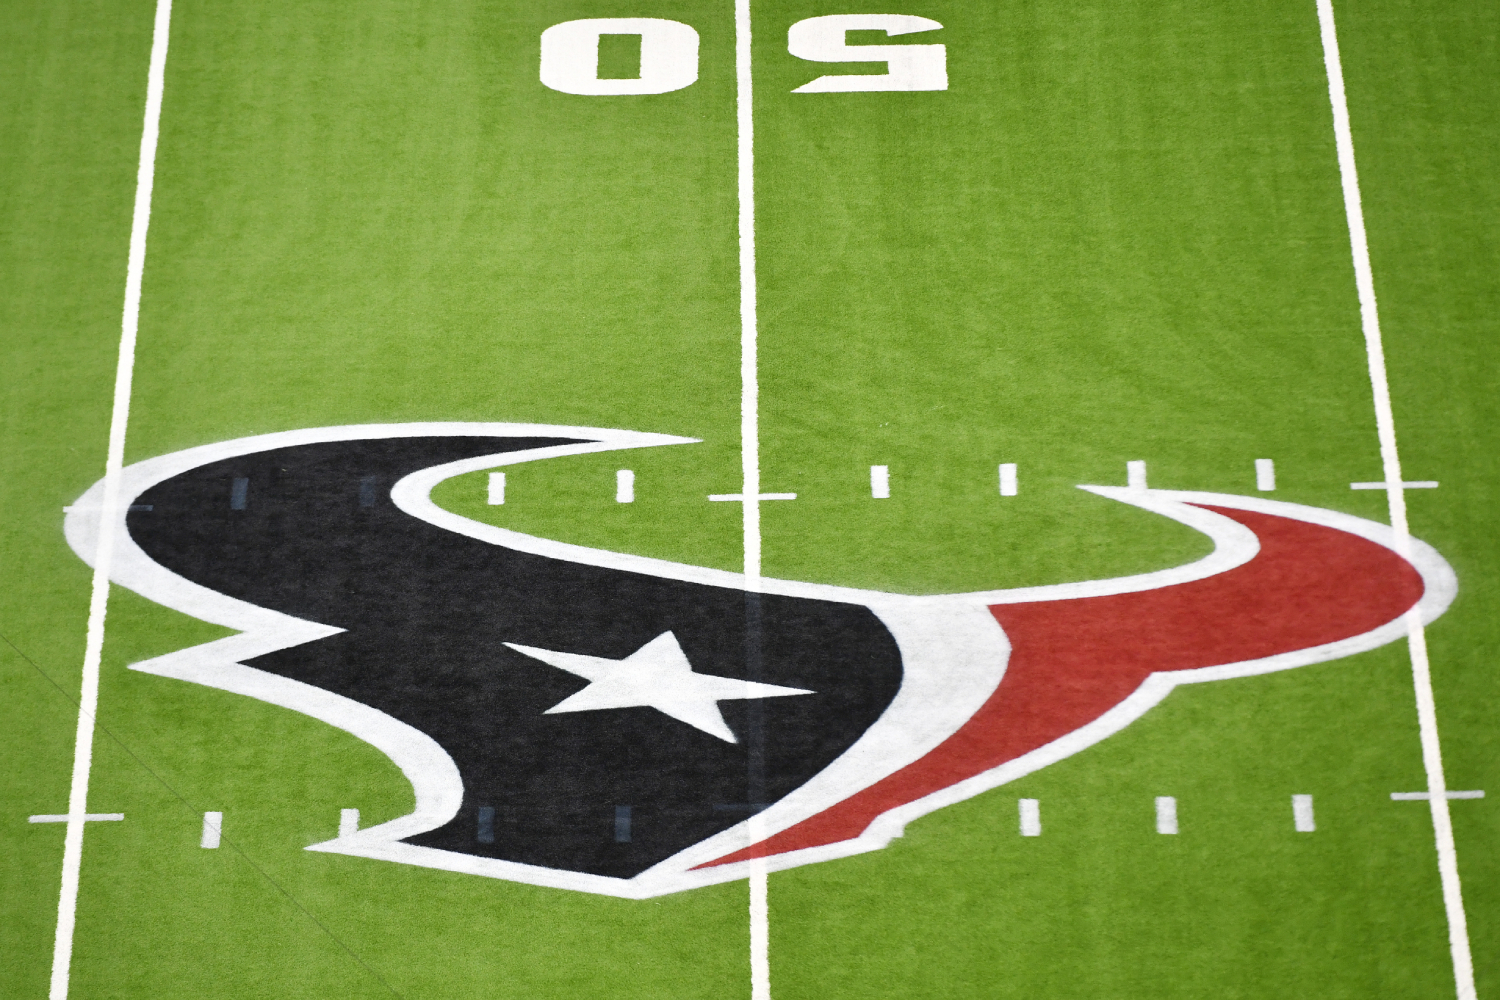 The Houston Texans made yet another baffling move.